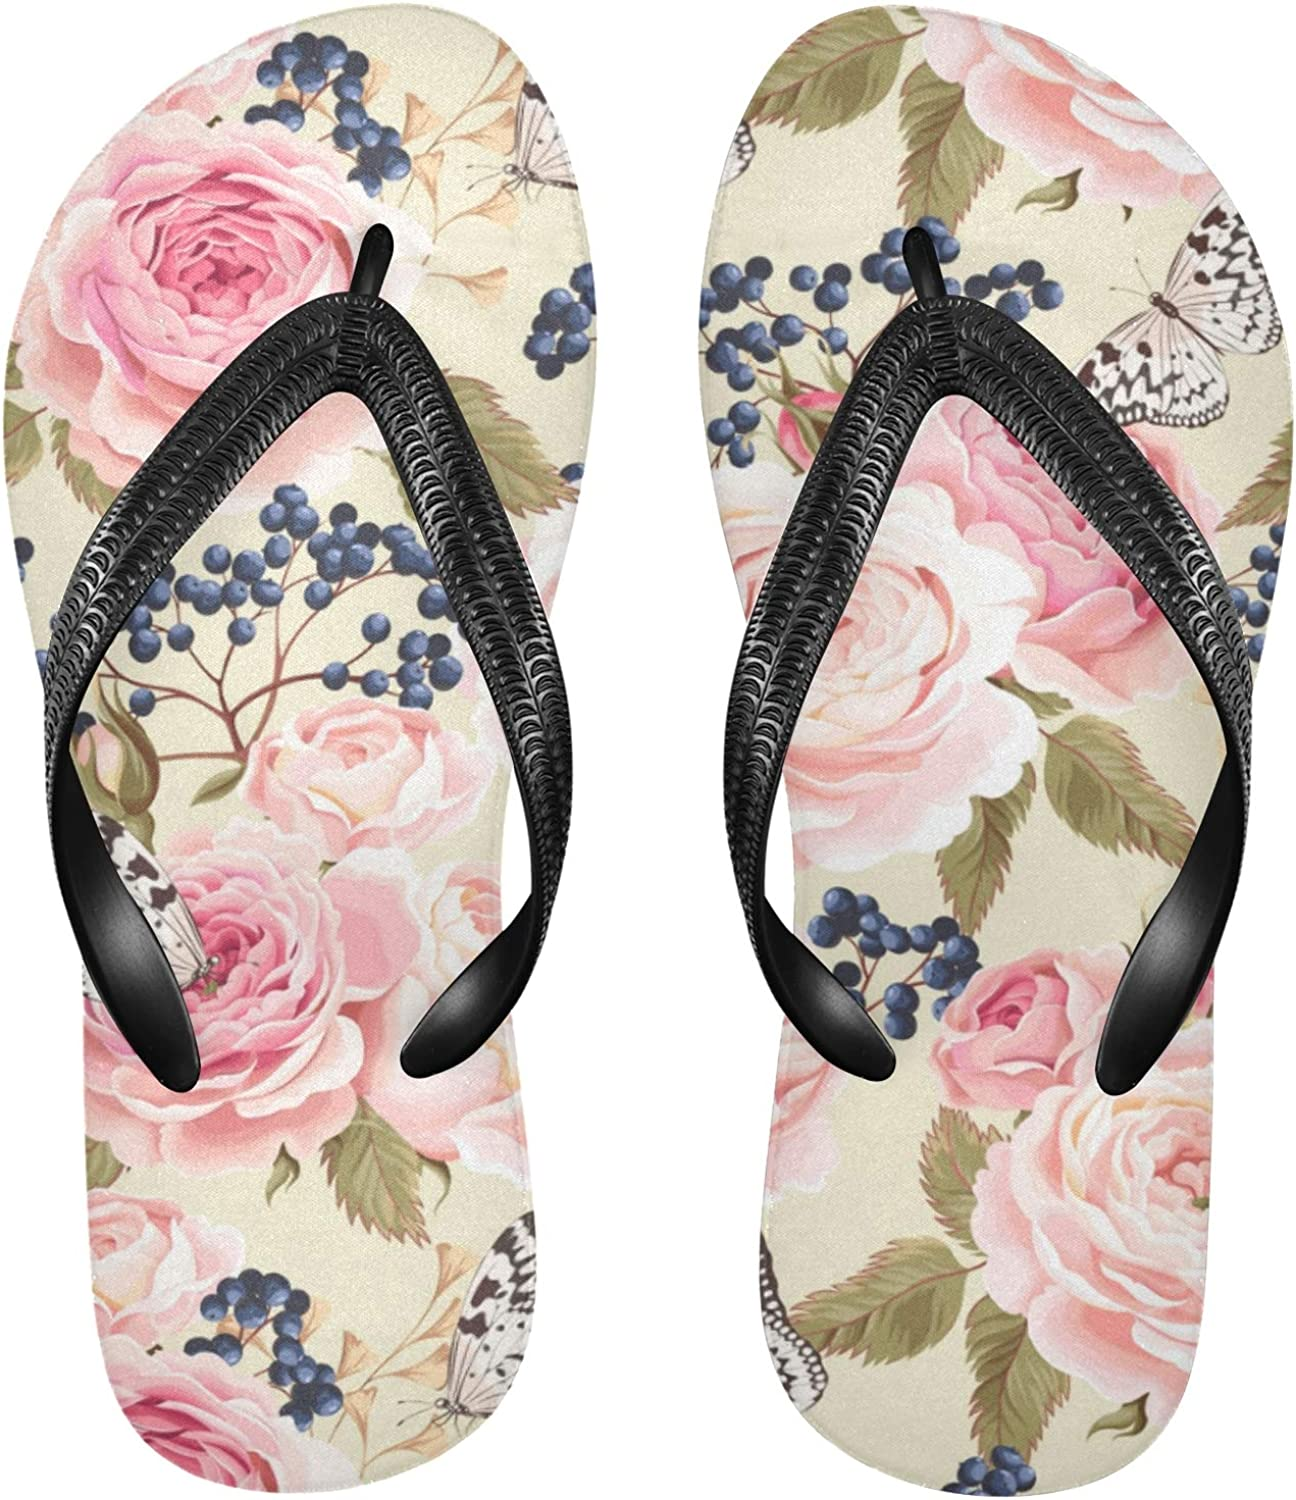 xigua Pink List price Floral Strawberry New Free Shipping Flip Flops S Men for Sandals Women